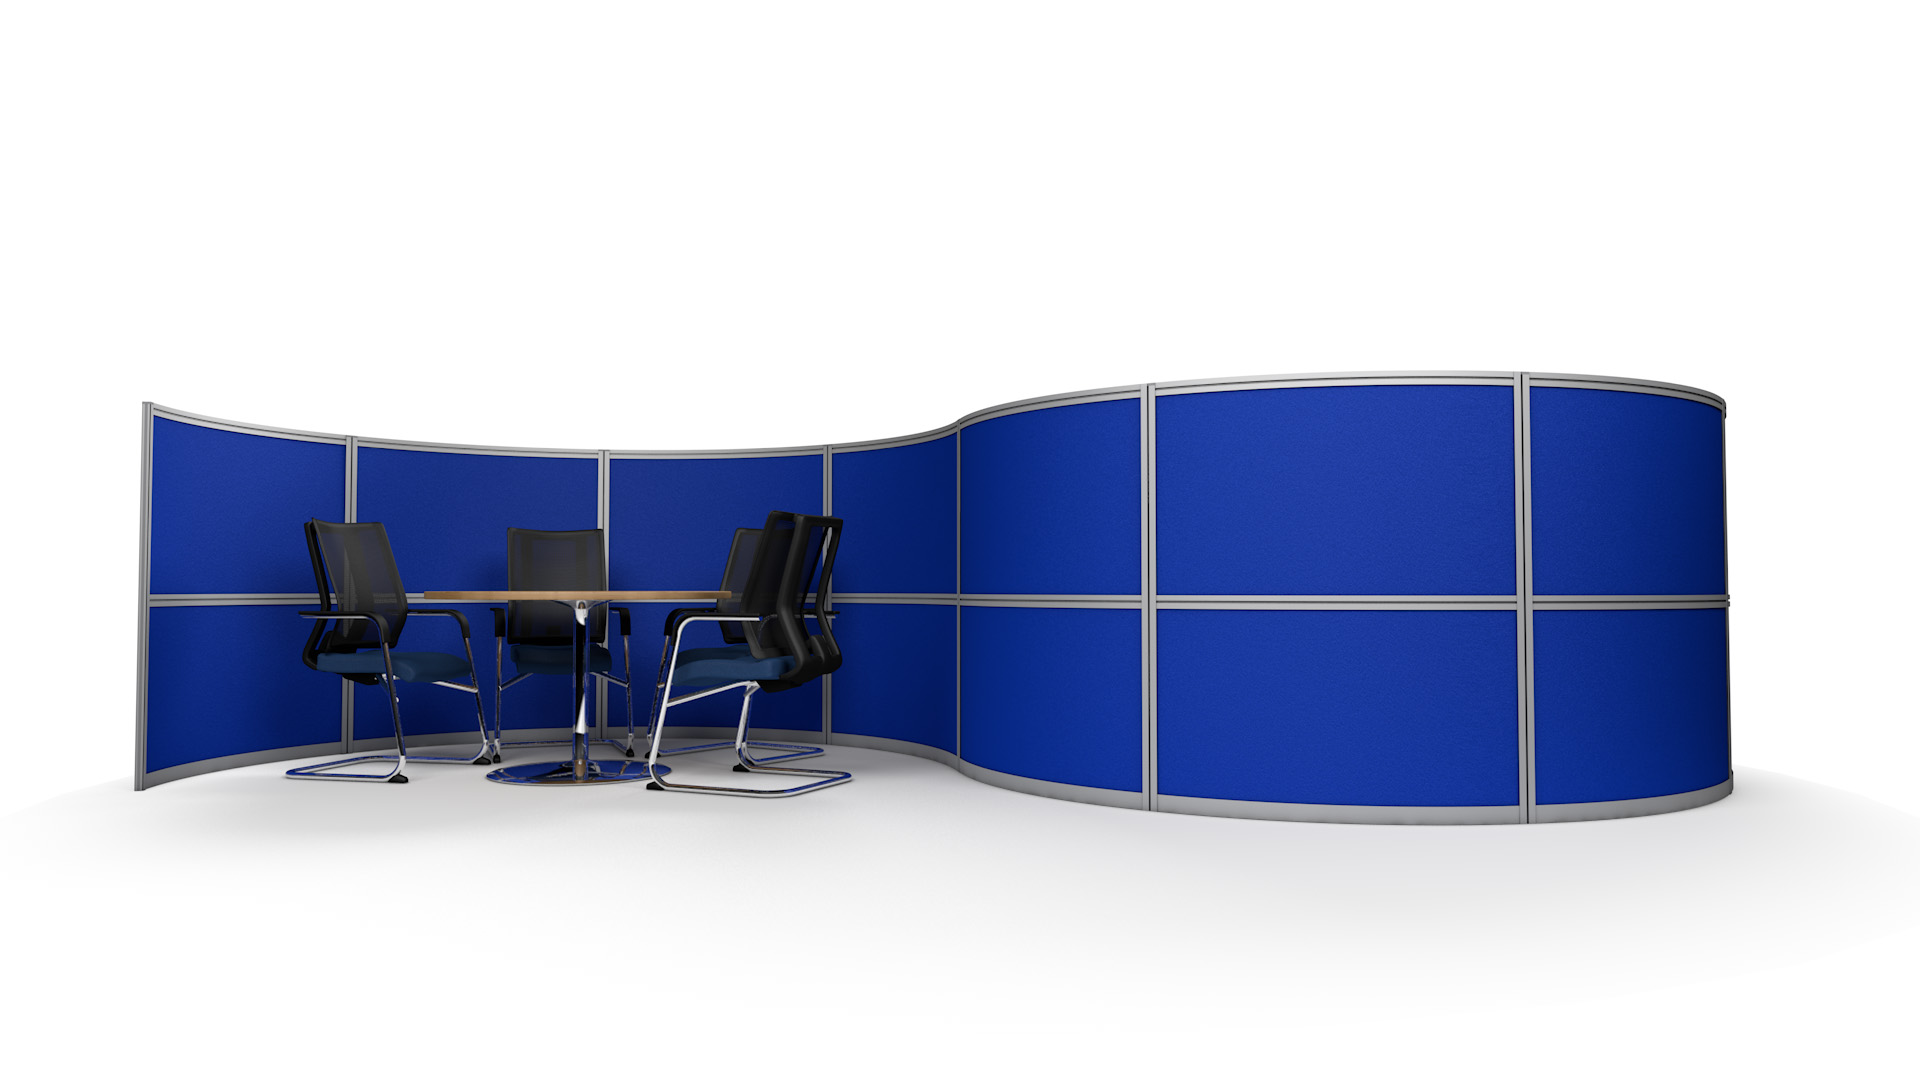 6m S-Shaped Office Partition Wall With Two Curved Meeting Pods